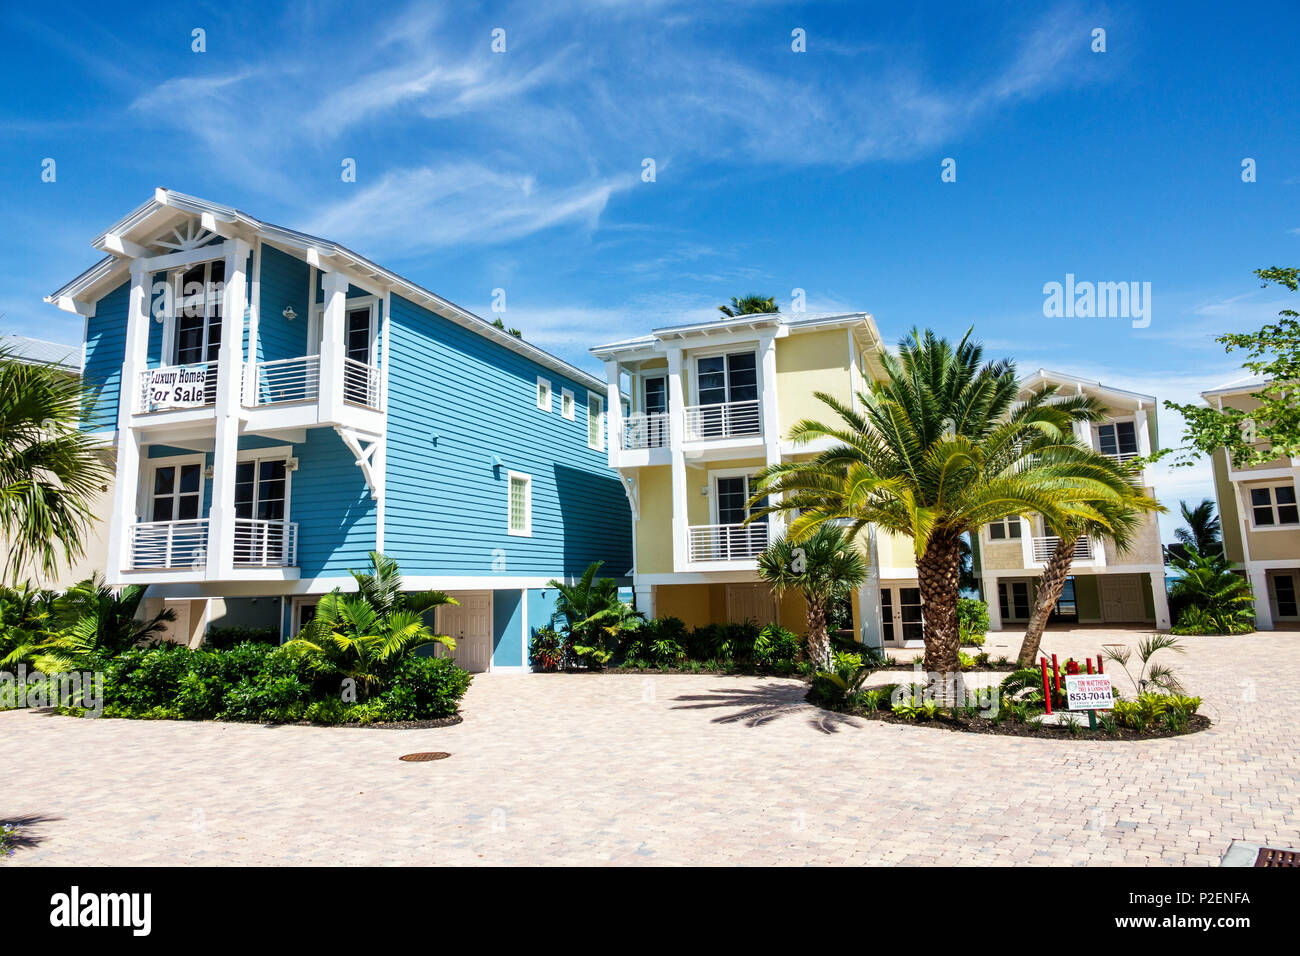 Oceanfront Homes Stock Photos & Oceanfront Homes Stock